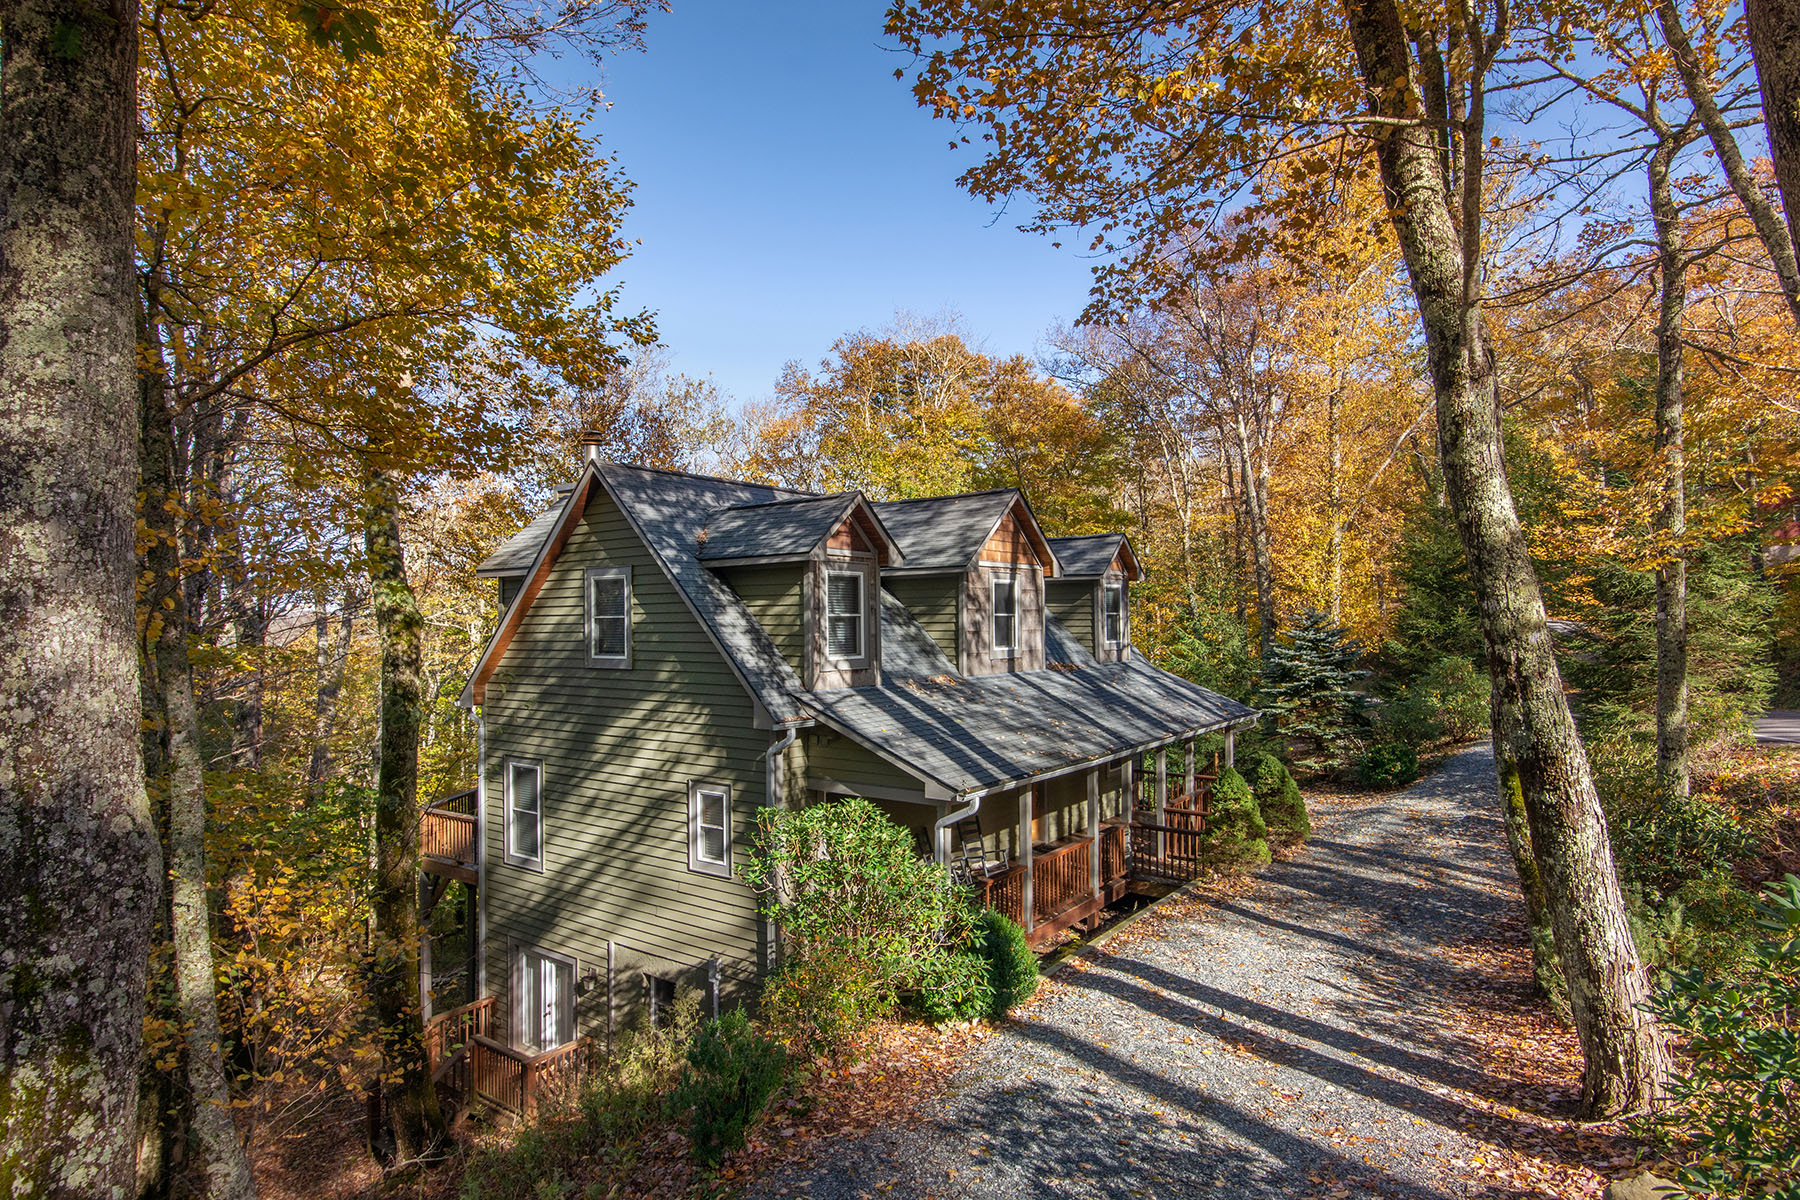 Single Family Homes for Sale at SUGAR MOUNTAIN 1618 Grouse Moor Dr Sugar Mountain, North Carolina 28604 United States